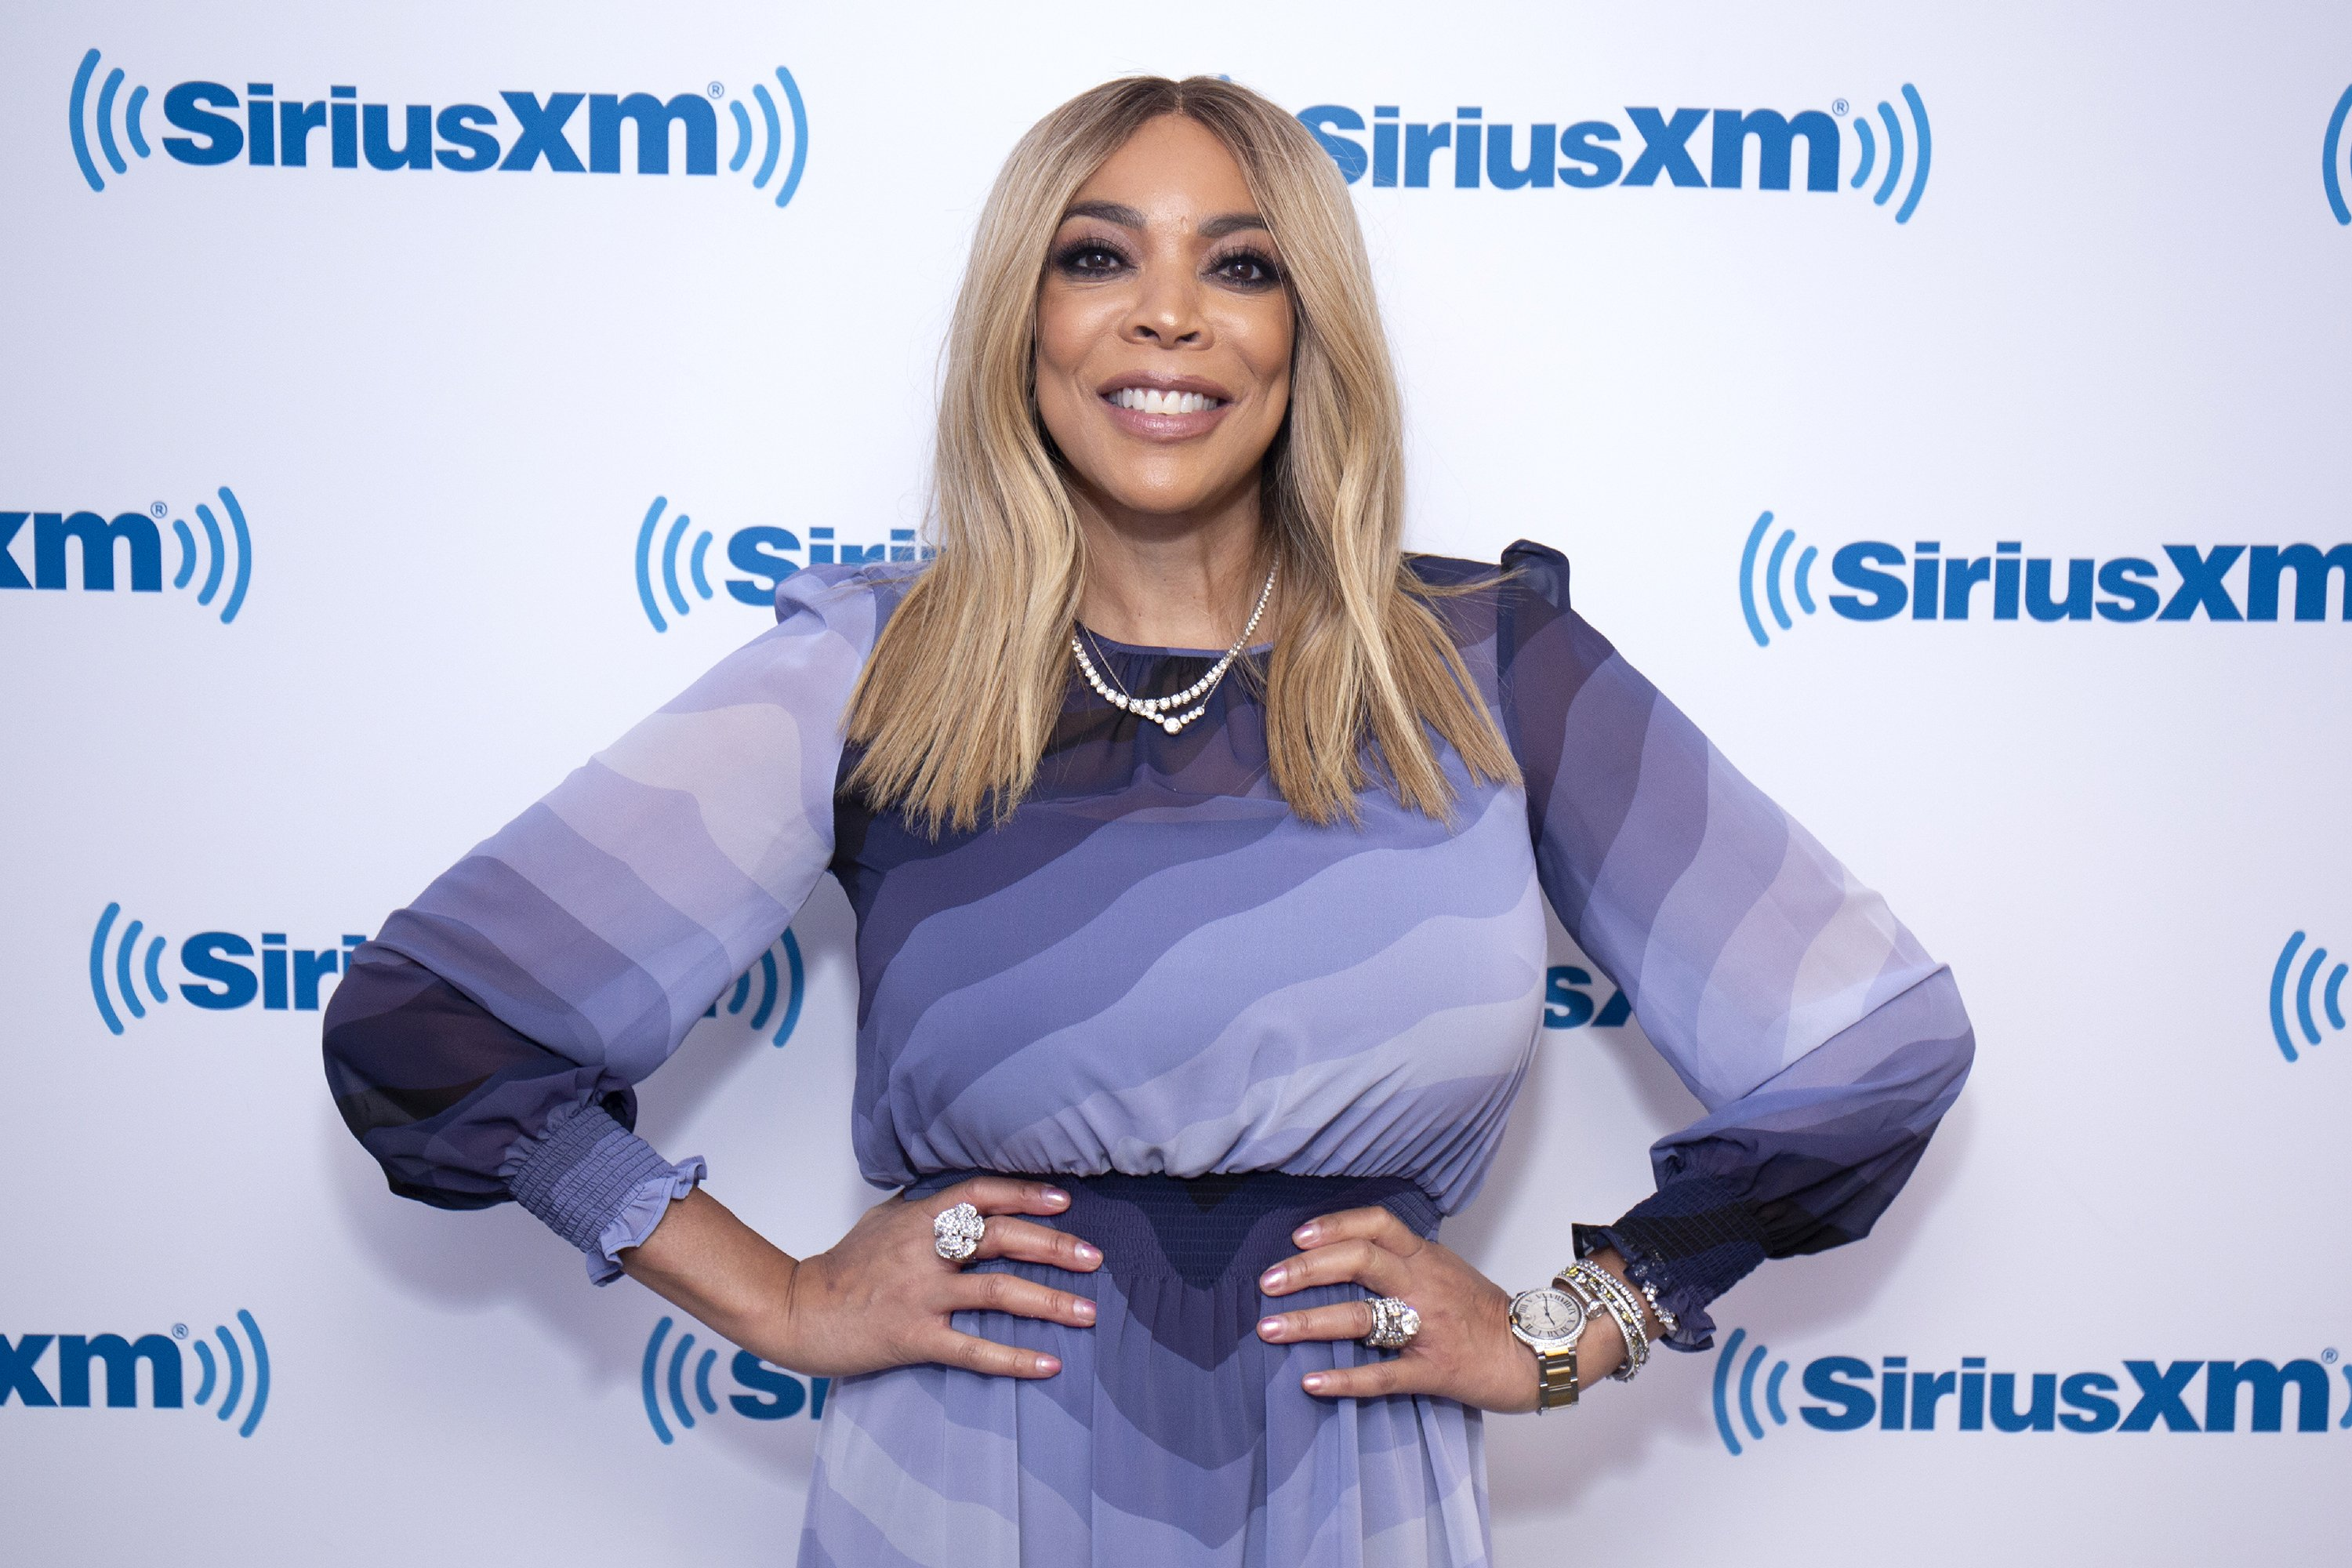 Wendy Williams visits SiriusXM Studios on Sept. 6, 2018 in New York City | Photo: Getty Images